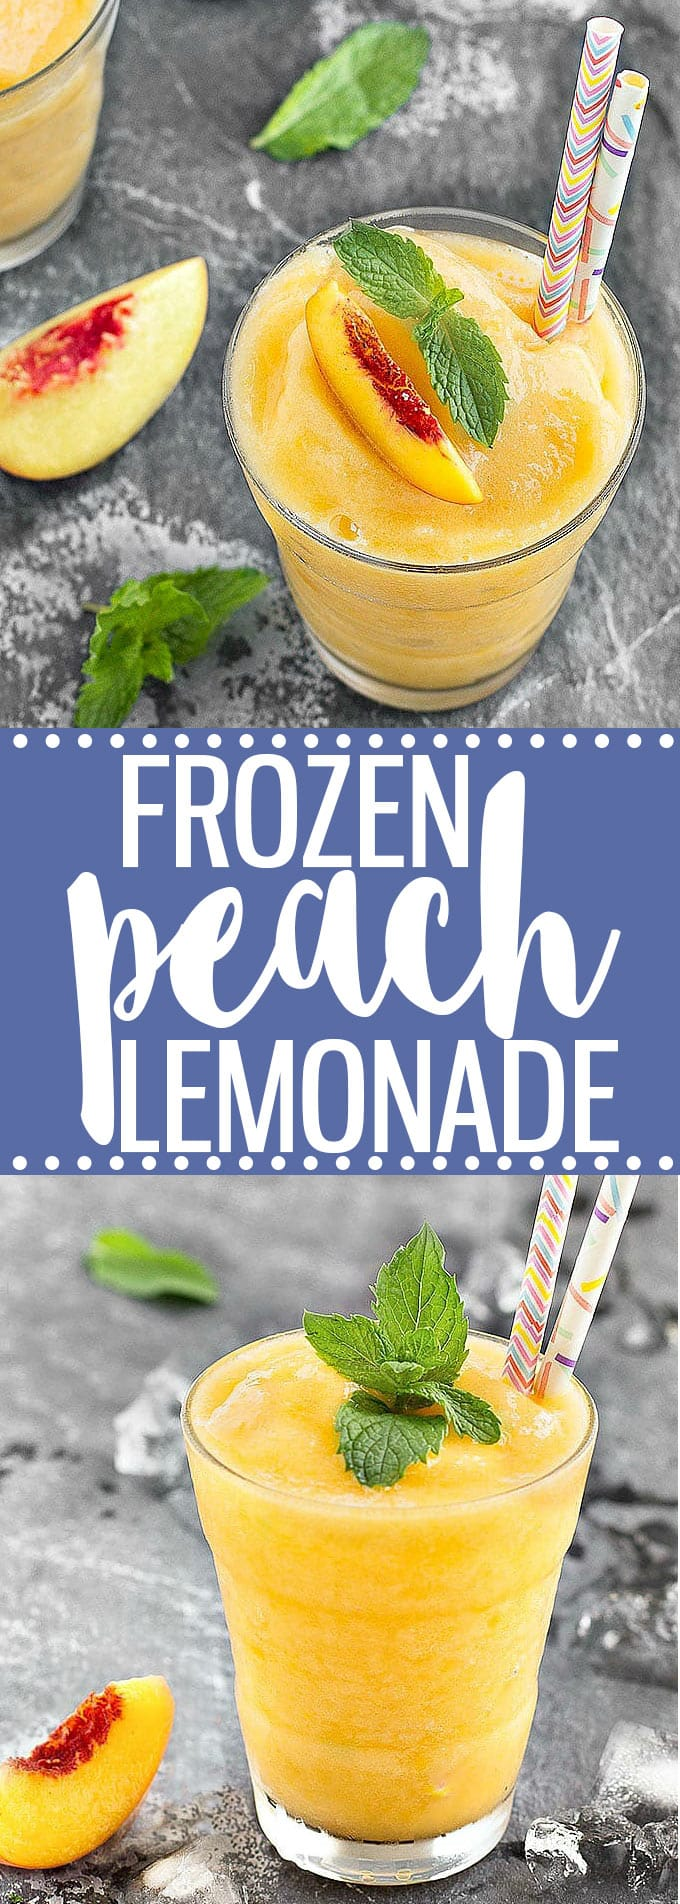 Frozen peach lemonade - the perfect refreshing beverage to cool you down this summer!